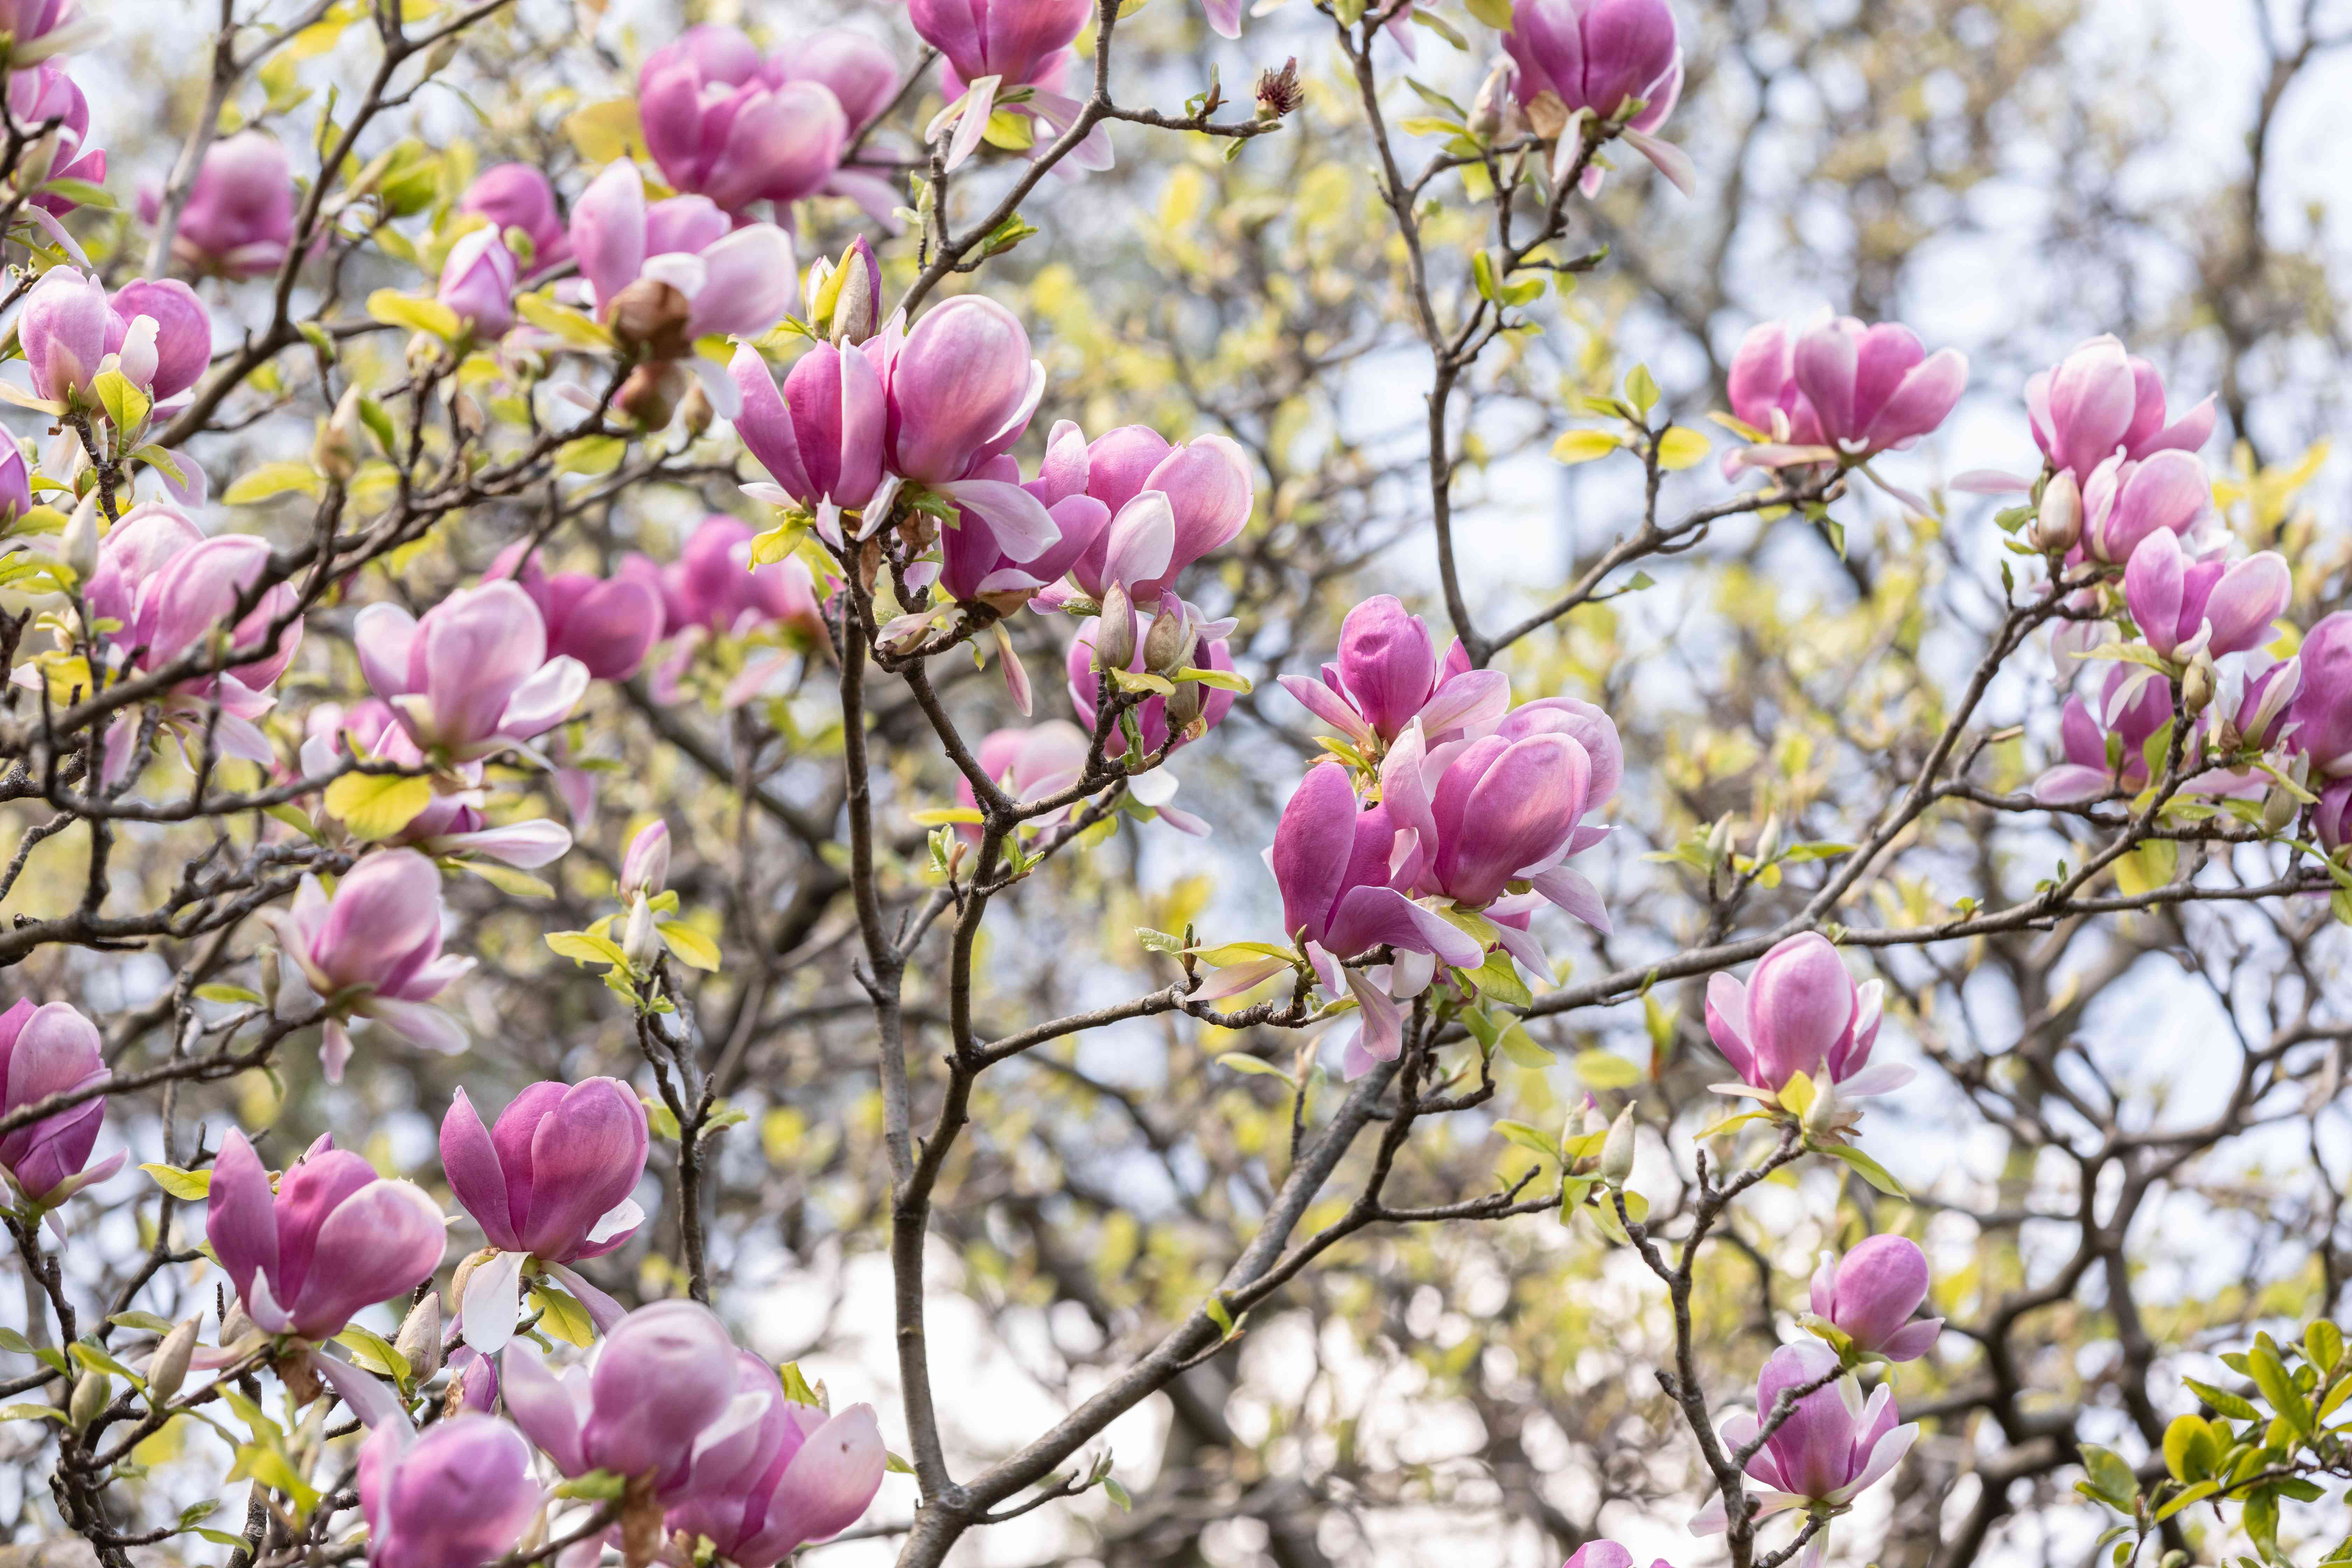 Saucer magnolia trees with bright pink saucer-like flowers on thin branches